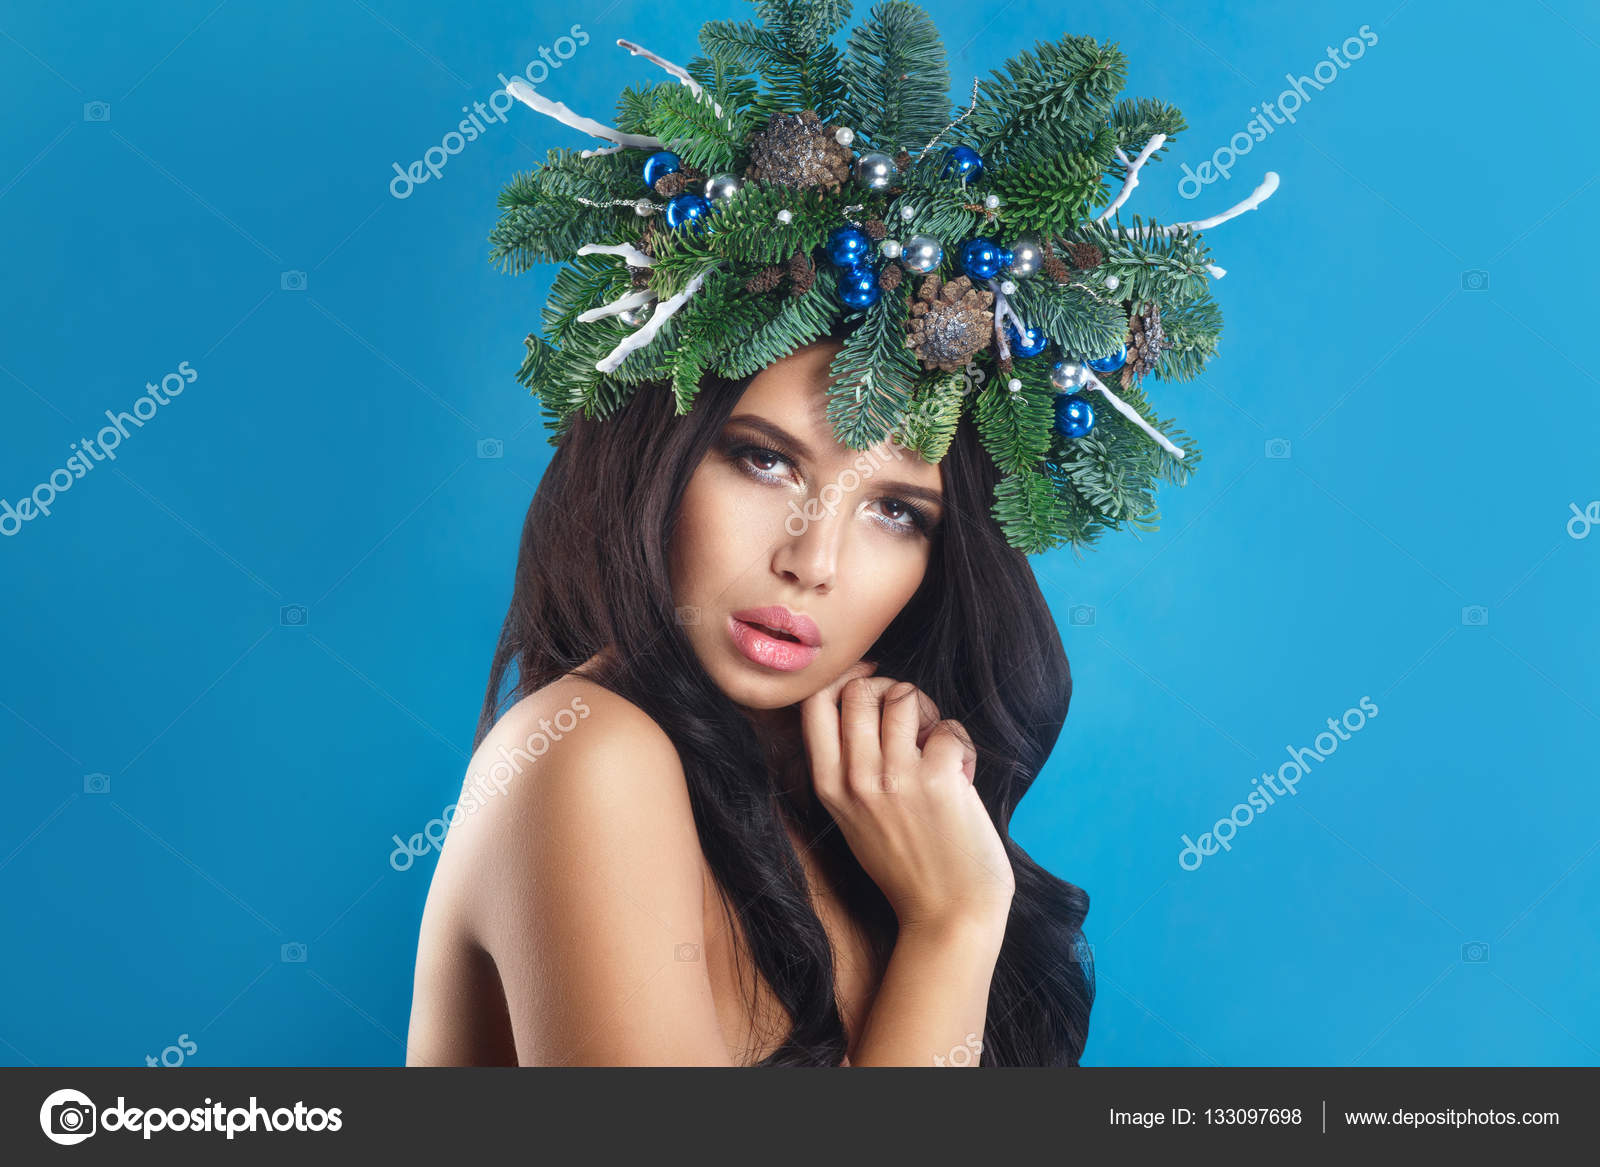 beautiful new year and christmas tree holiday hairstyle and make up beauty girl portrait over winter background colorful makeup and hair